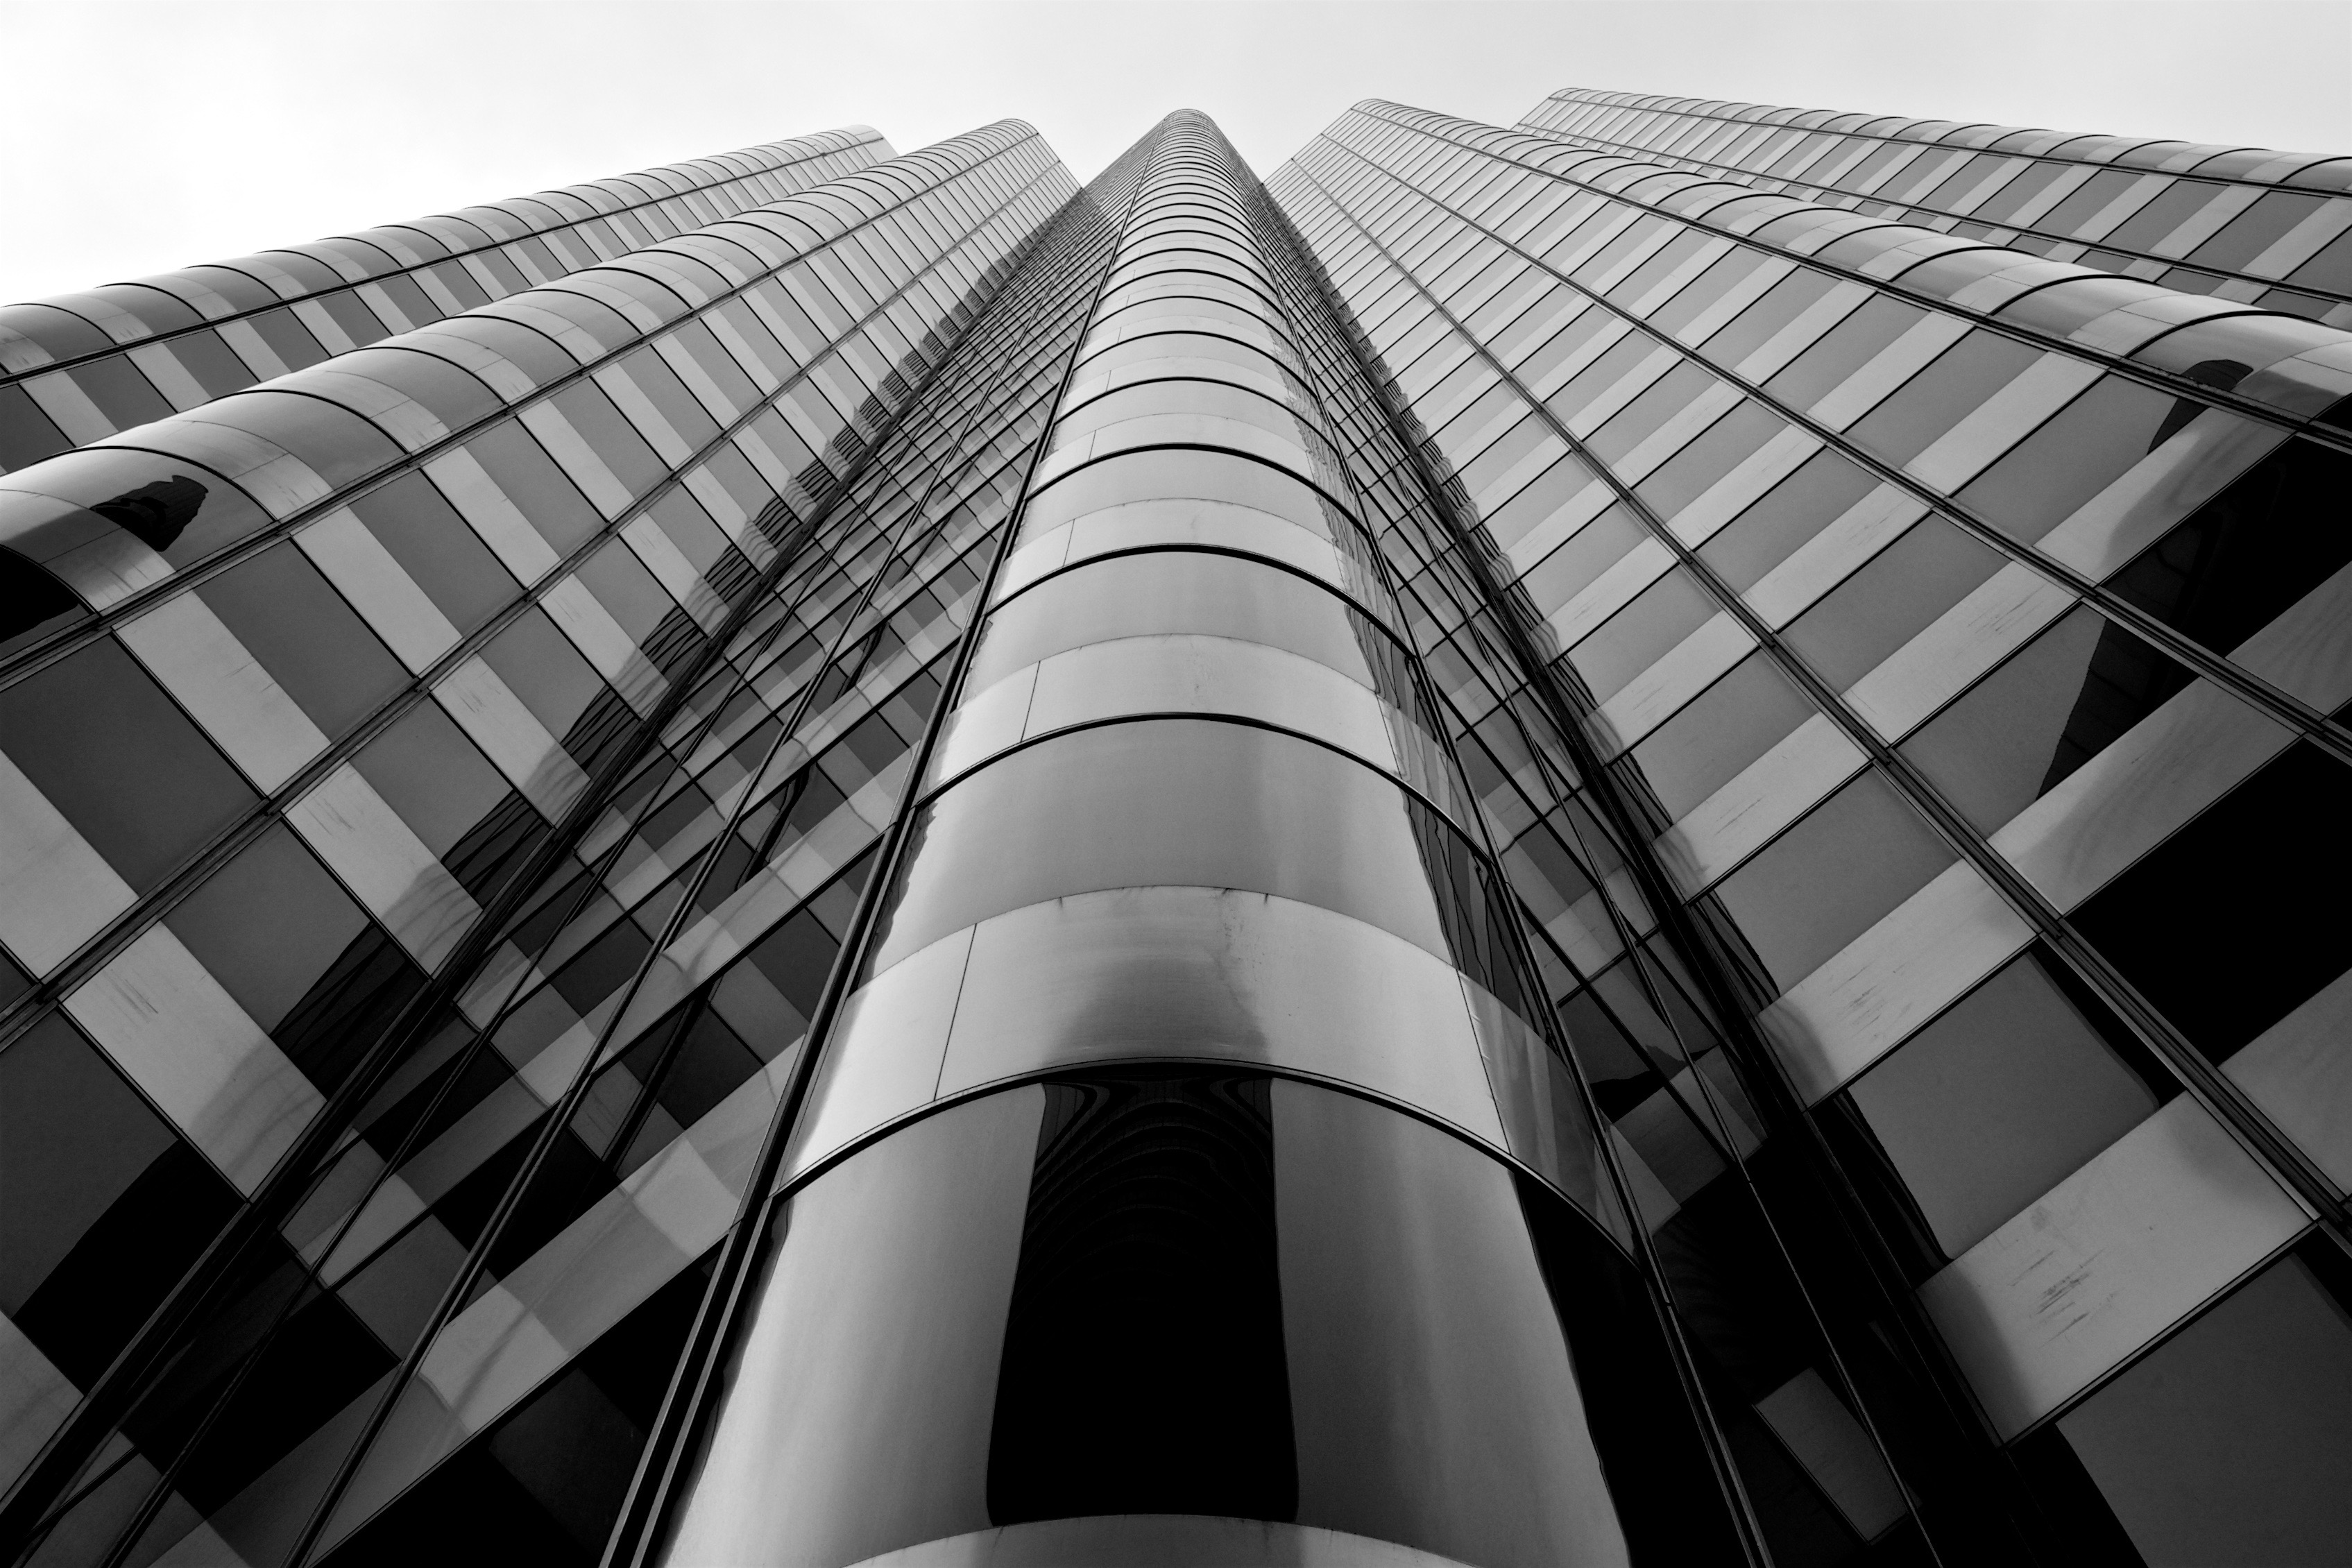 Architectural Design Software Low Angle Glass High Rise Building 183 Free Stock Photo